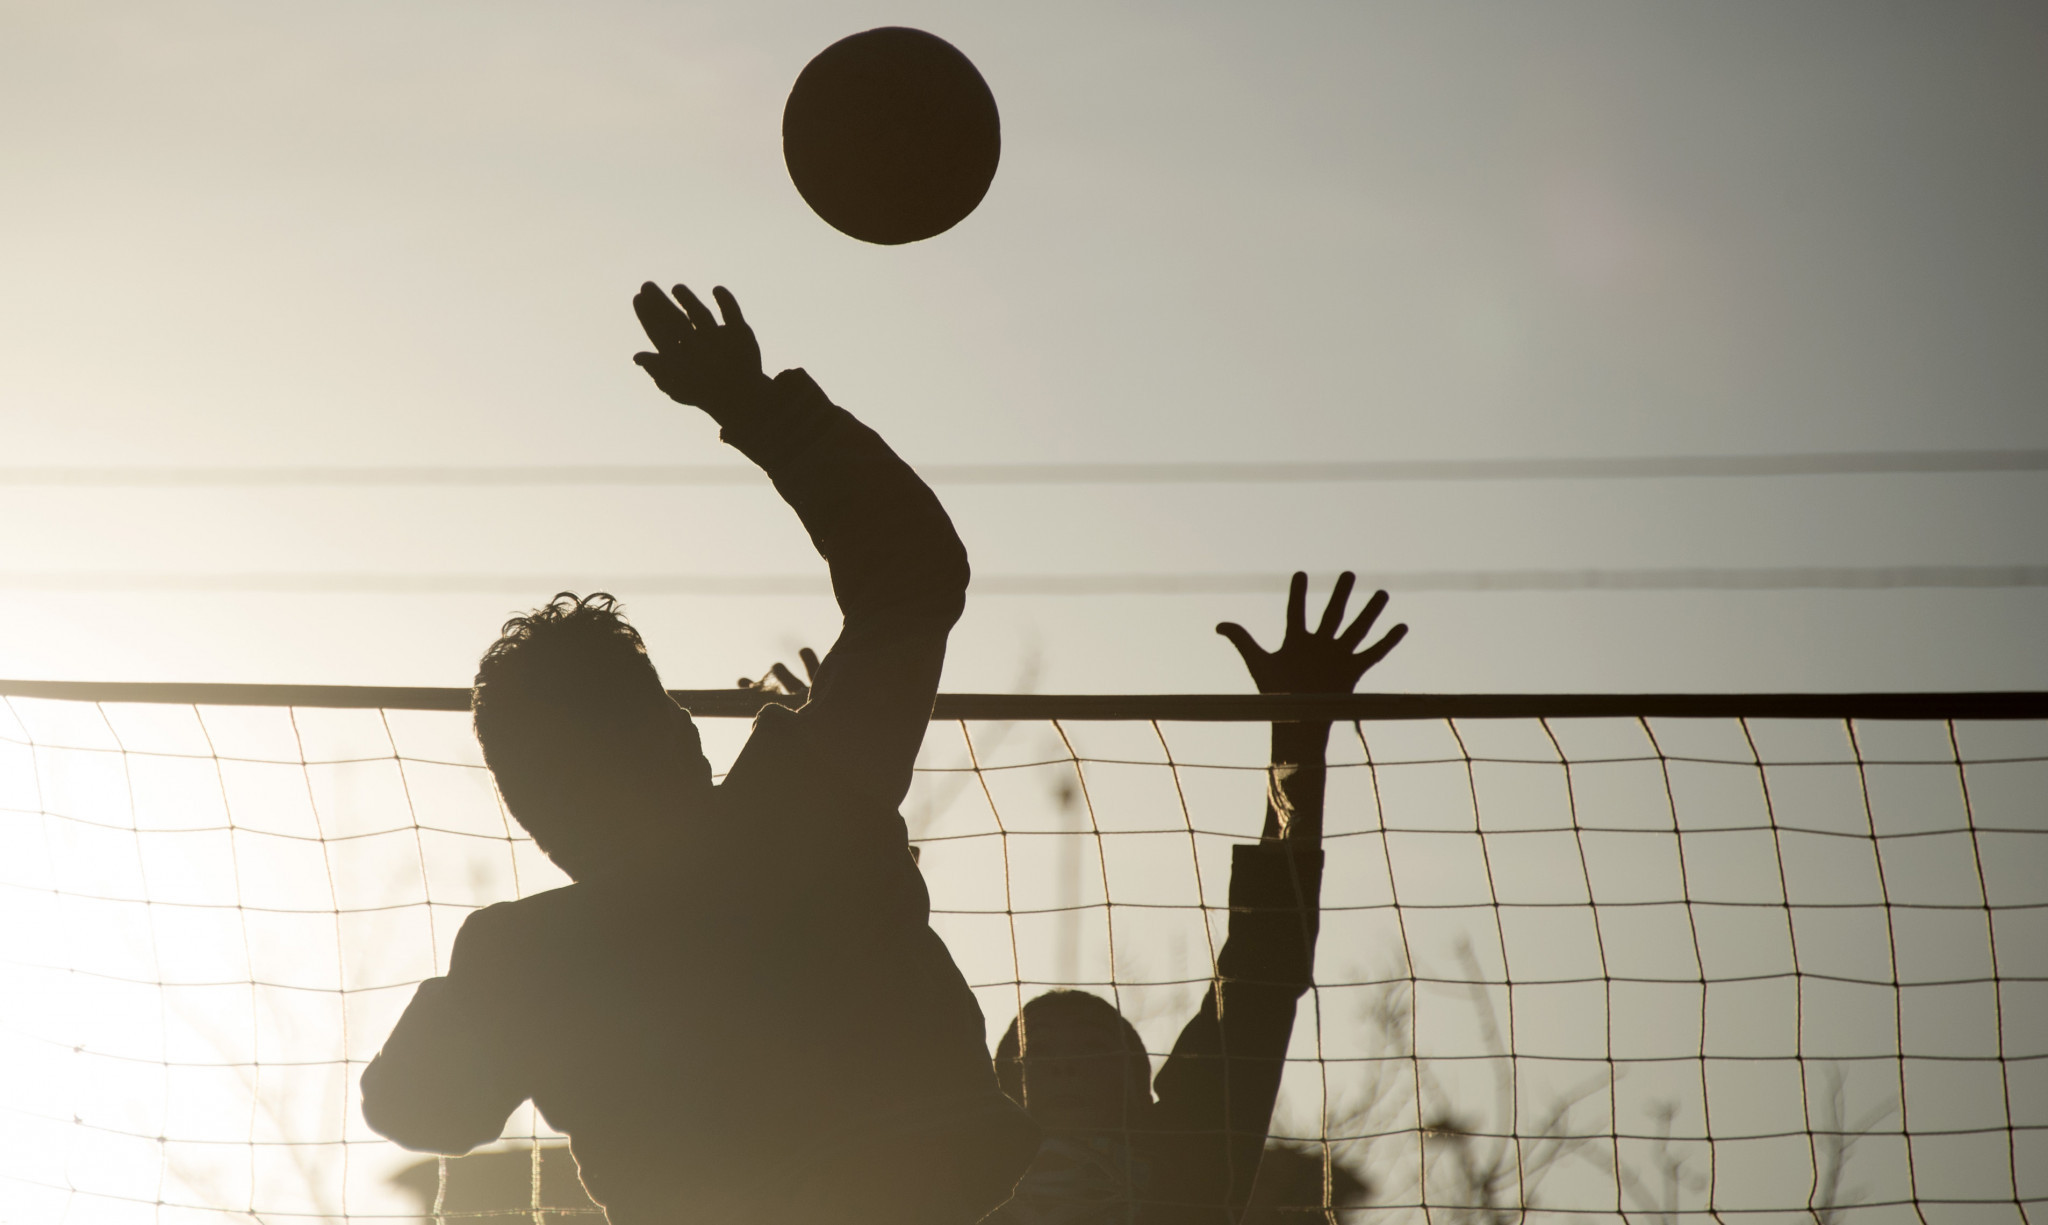 Afghan women's youth volleyball player reportedly beheaded by Taliban as international community urged to do more to evacuate female athletes